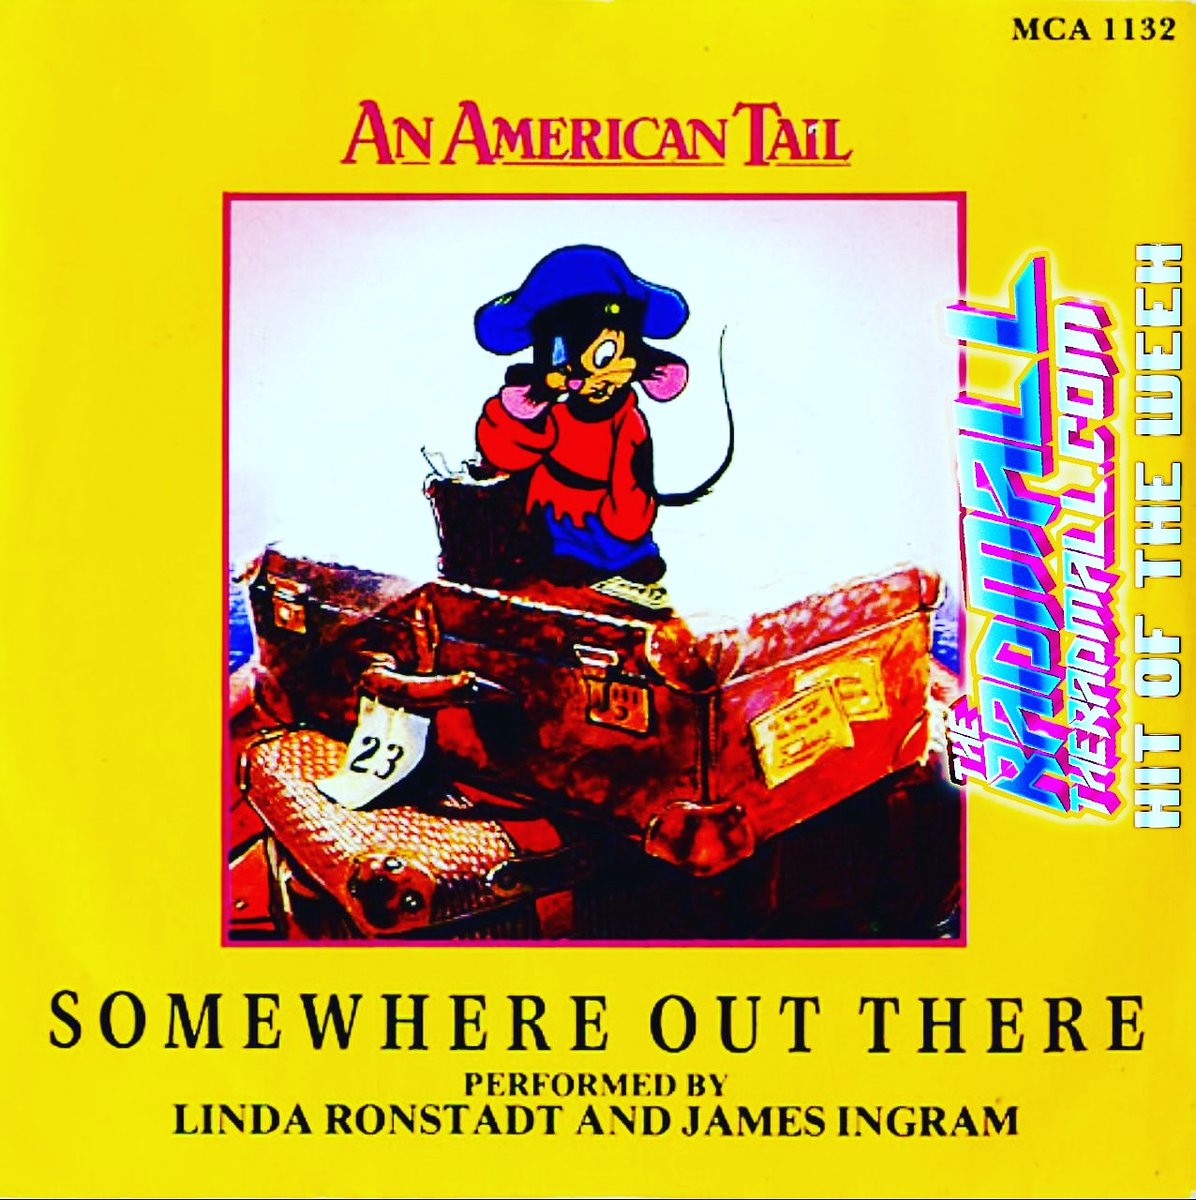 🎶Hit of The Week🎶 #SomewhereOutThere by #JamesIngram & #LindaRonstadt off the '86 soundtrack, #AnAmericanTail  Watch the music video at https://t.co/hMfnn20Y3T  By #CDuniverse  #80s #80sMusic #August #80sCartoons #MALLtoons #80sMovies #September #80sSoundtrackSeptemberII https://t.co/6OZrsDZOFF